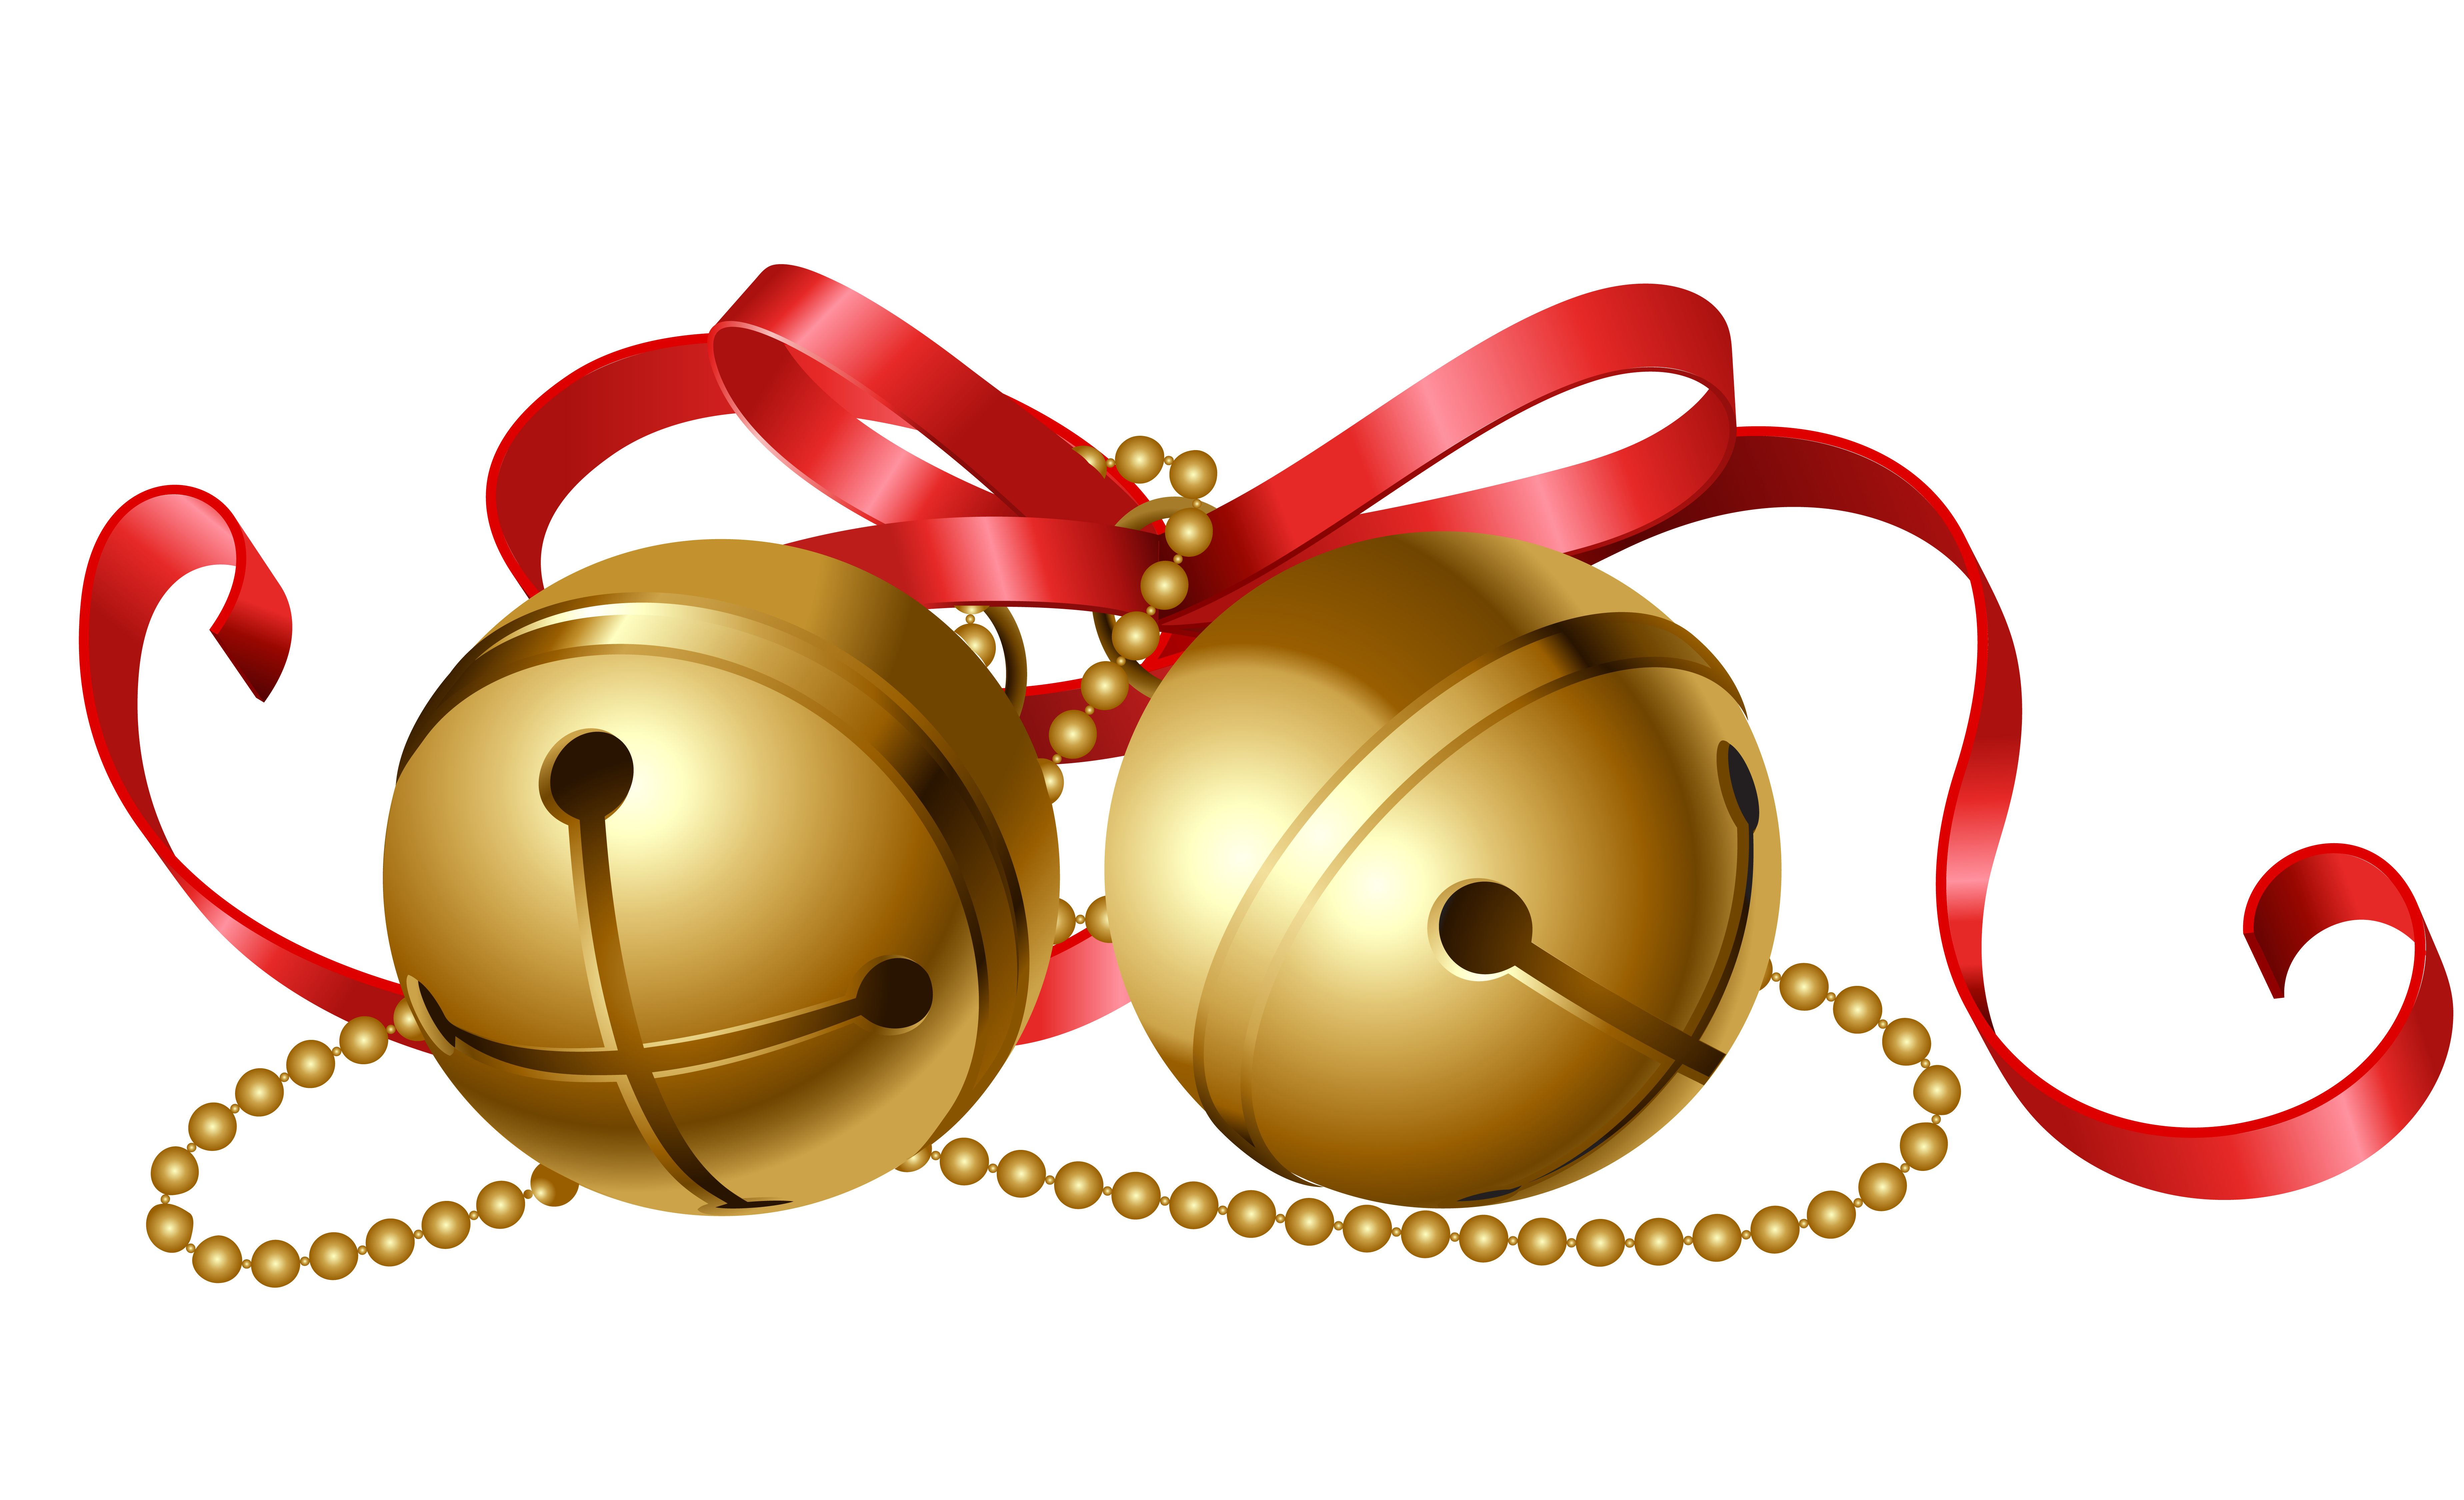 royalty free Jingle clipart. Sleigh bell clip art.